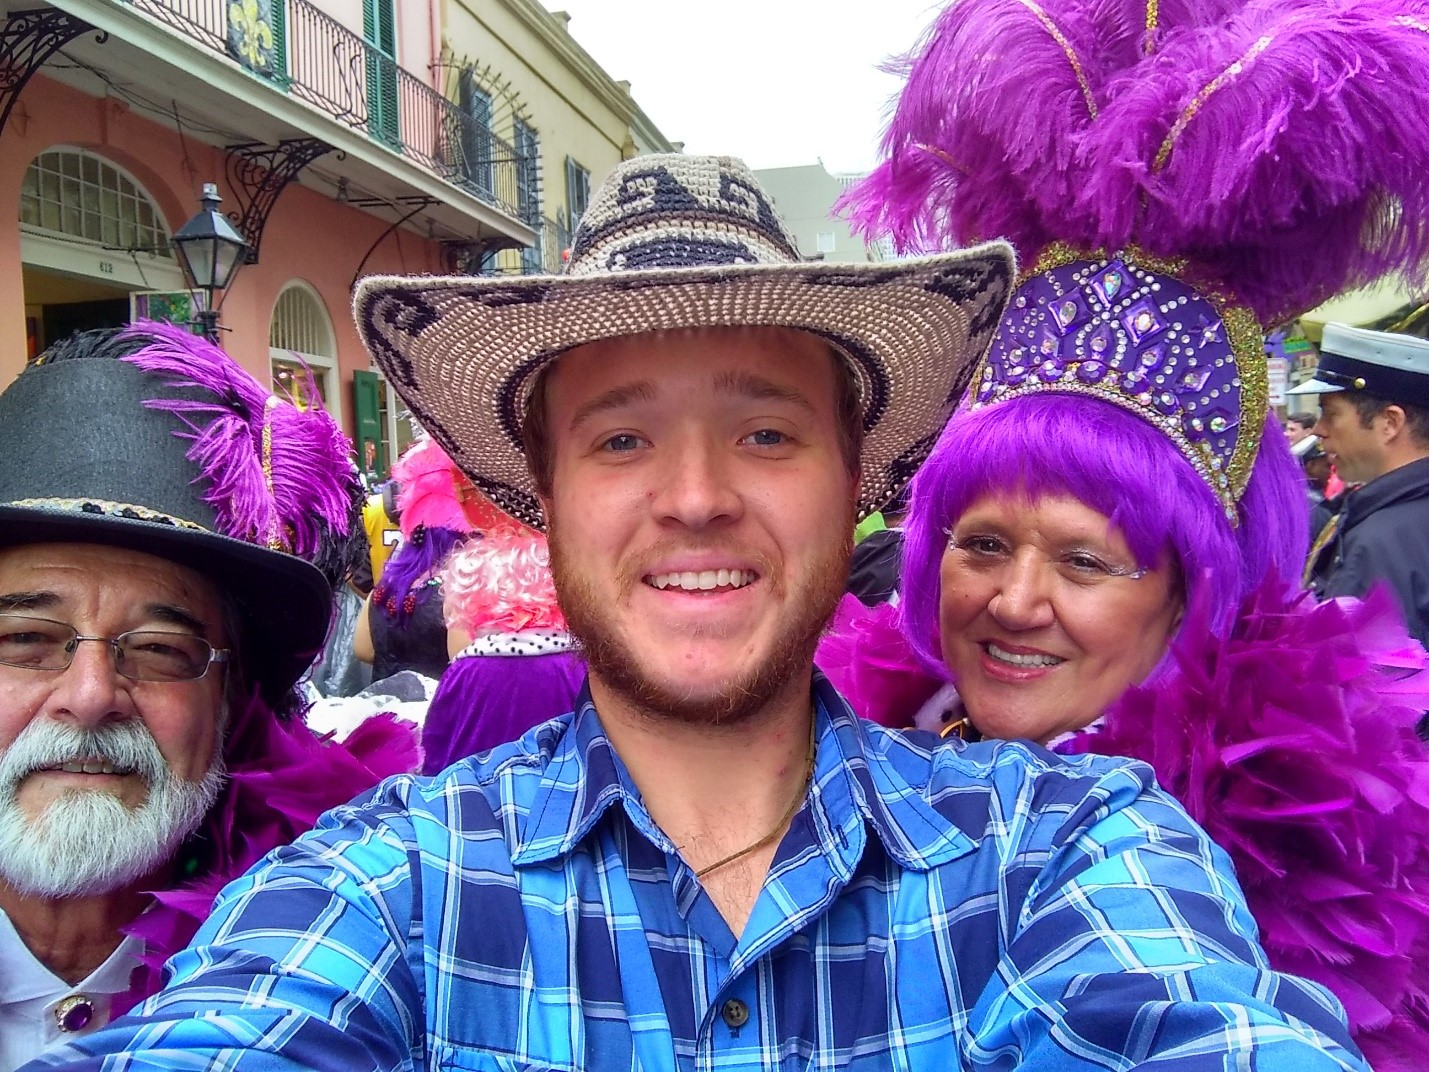 Tour Mardi Gras Group